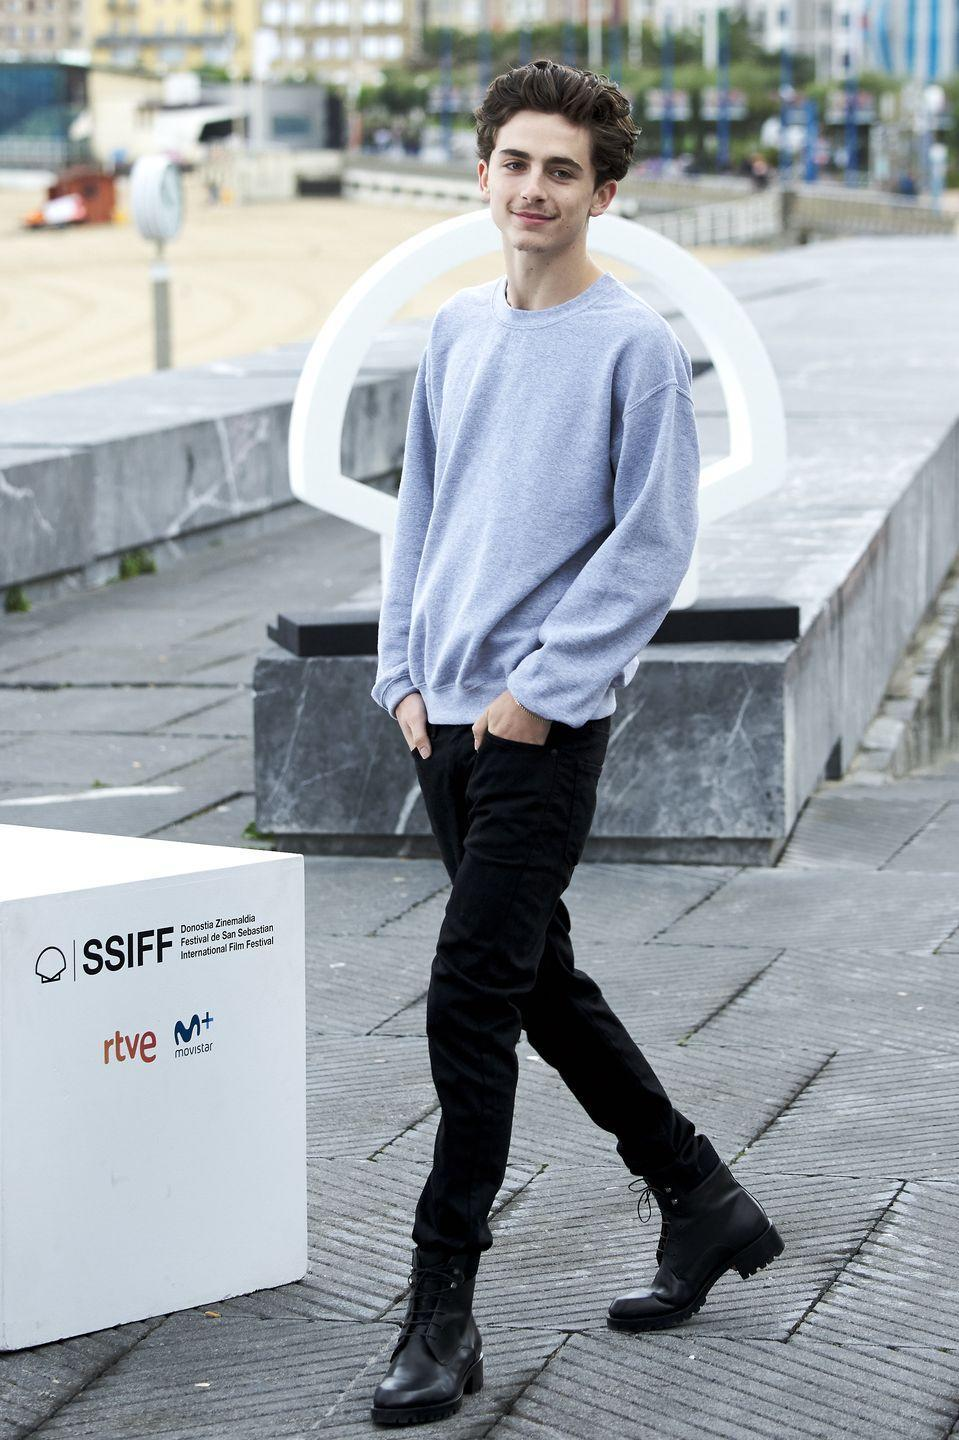 <p>Plain grey sweatshirts are fine. Black jeans are fine. Black boots are fine. But amp up the contrast in cuts, add some commando soles, and fine is lifted by the finer details.</p>